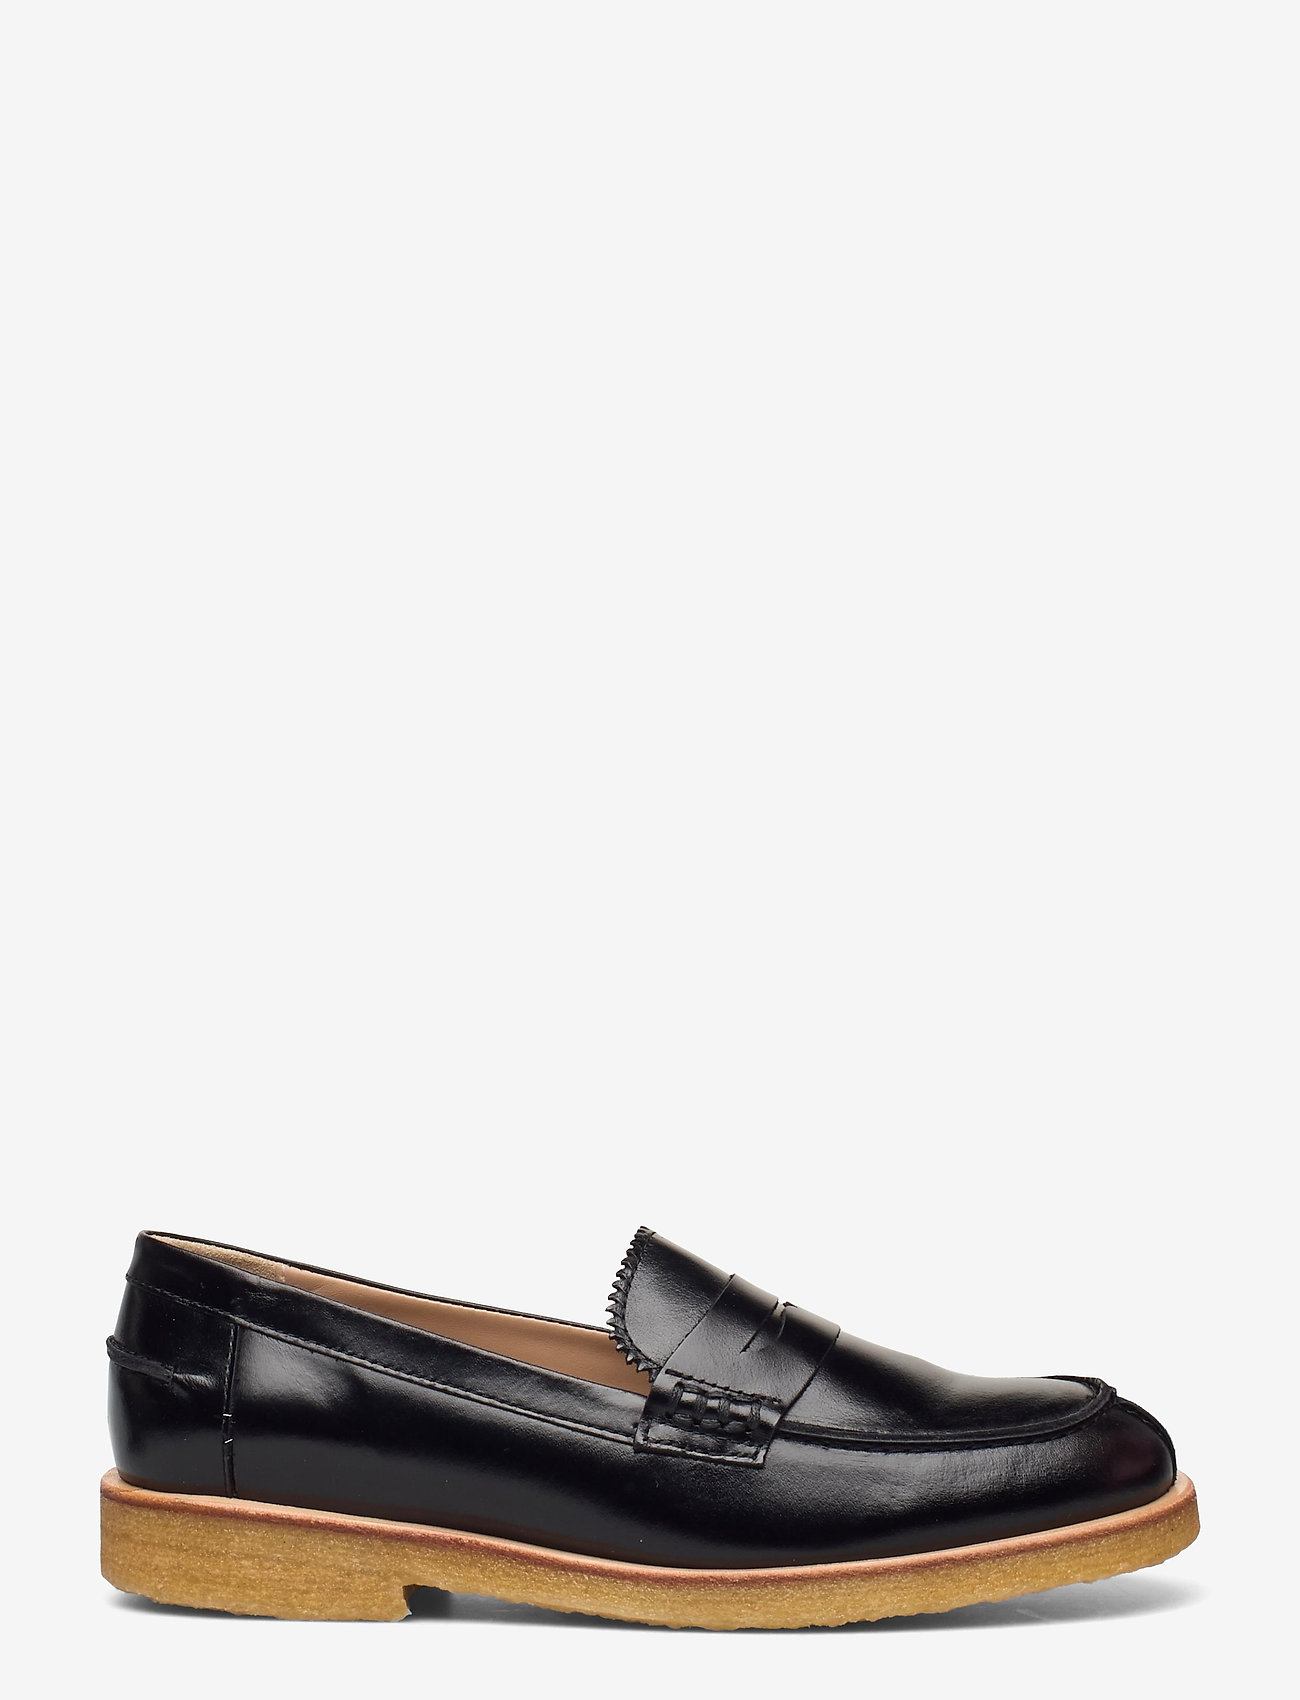 ANGULUS - Loafer - flat - instappers - 1835 black - 1